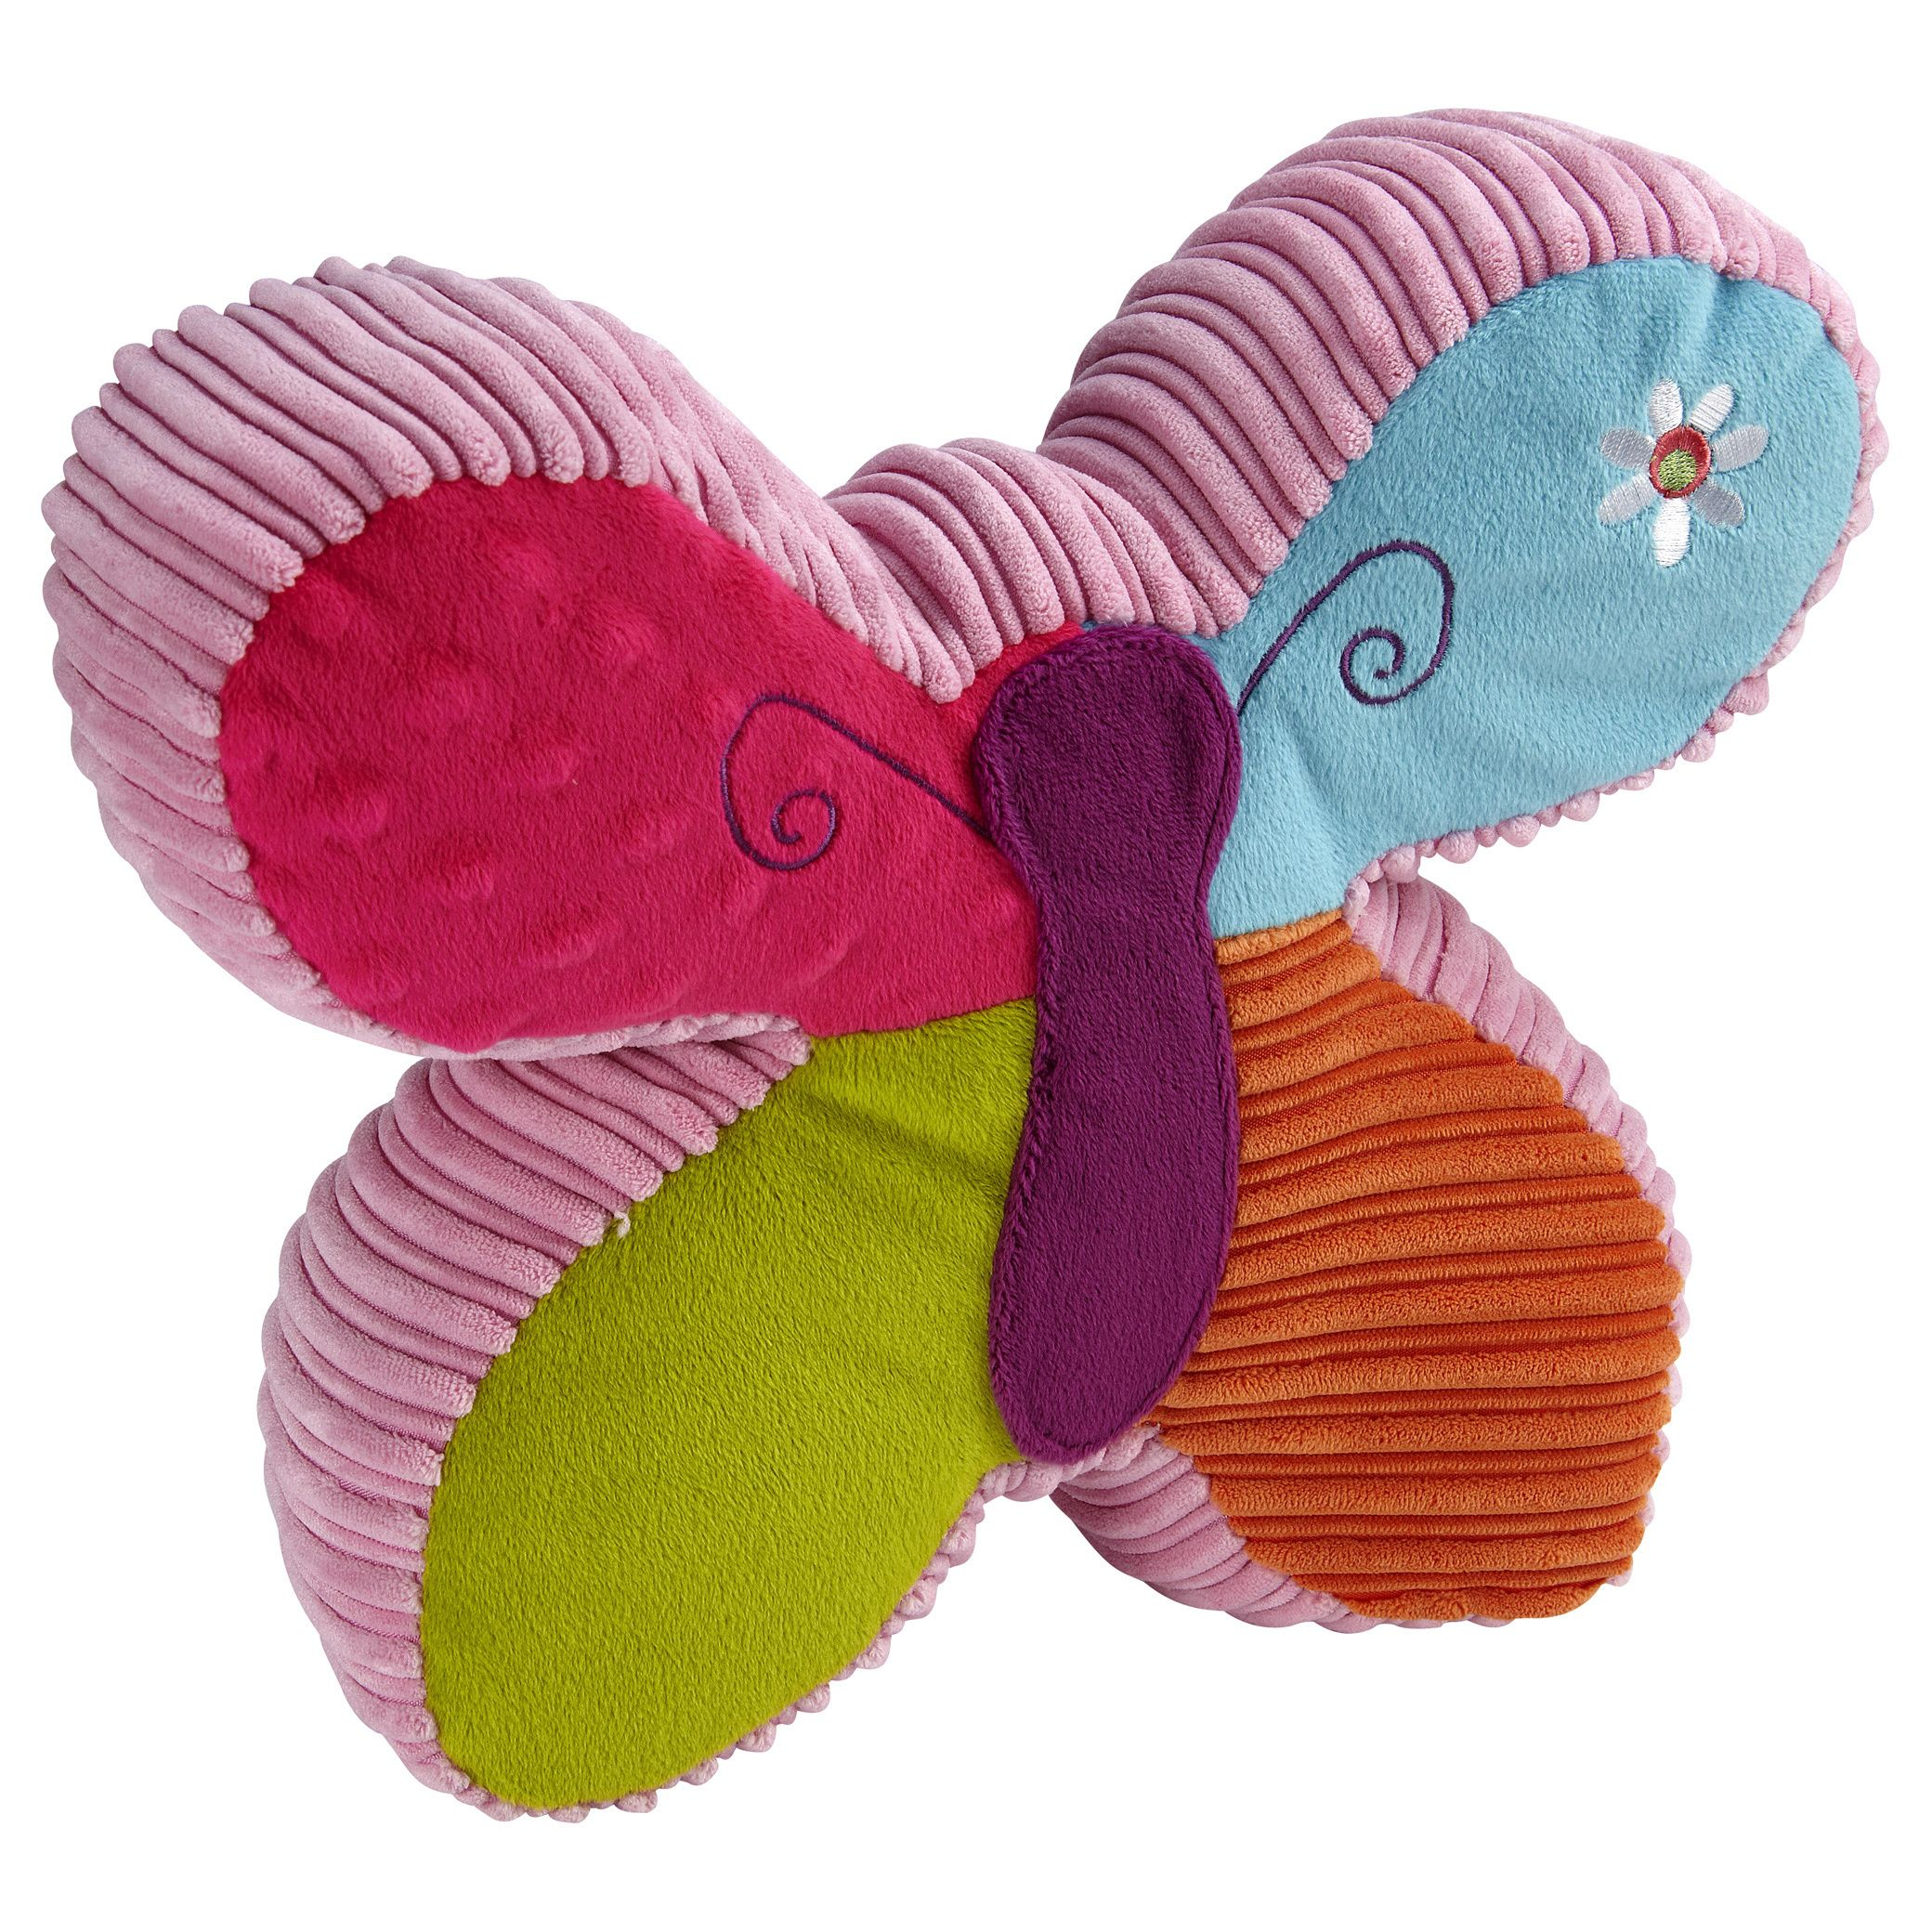 Dress up your child's bed with the Garanimals Wild Flower Butterfly Pillow. This eye-catching piece also works beautifully as a throw pillow on a chair in your child's bedroom. It features cheerful, bright colors and an applique with cute embroidery.